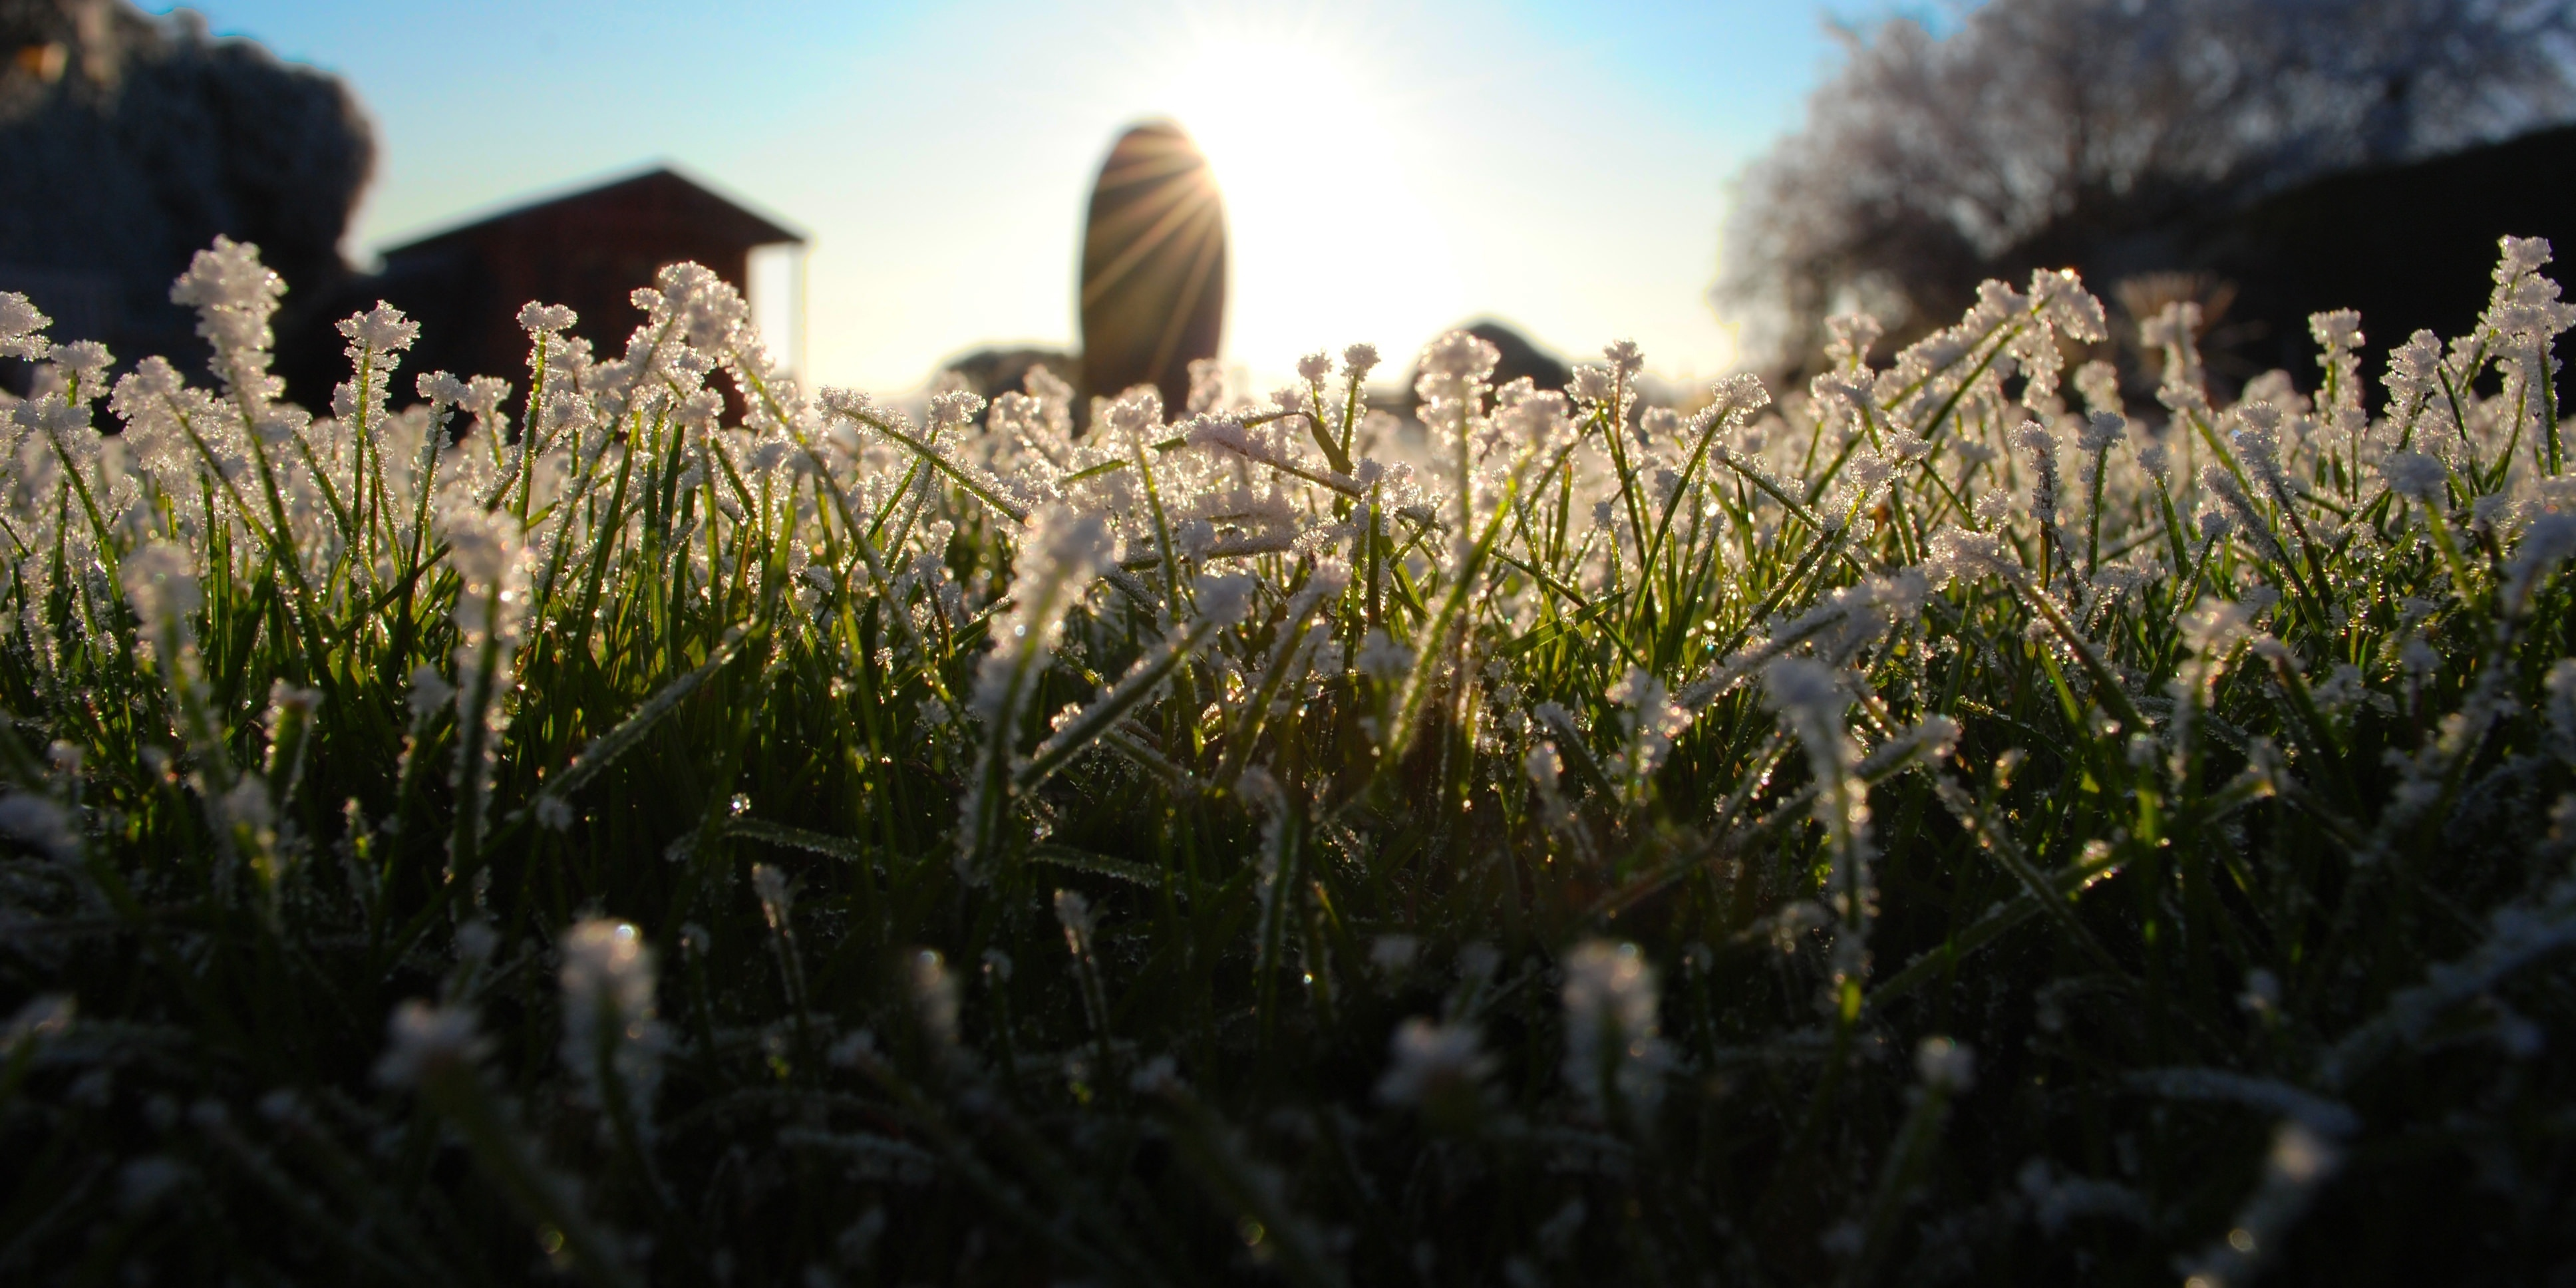 Stay off your frosted grass until the sun melts it away.